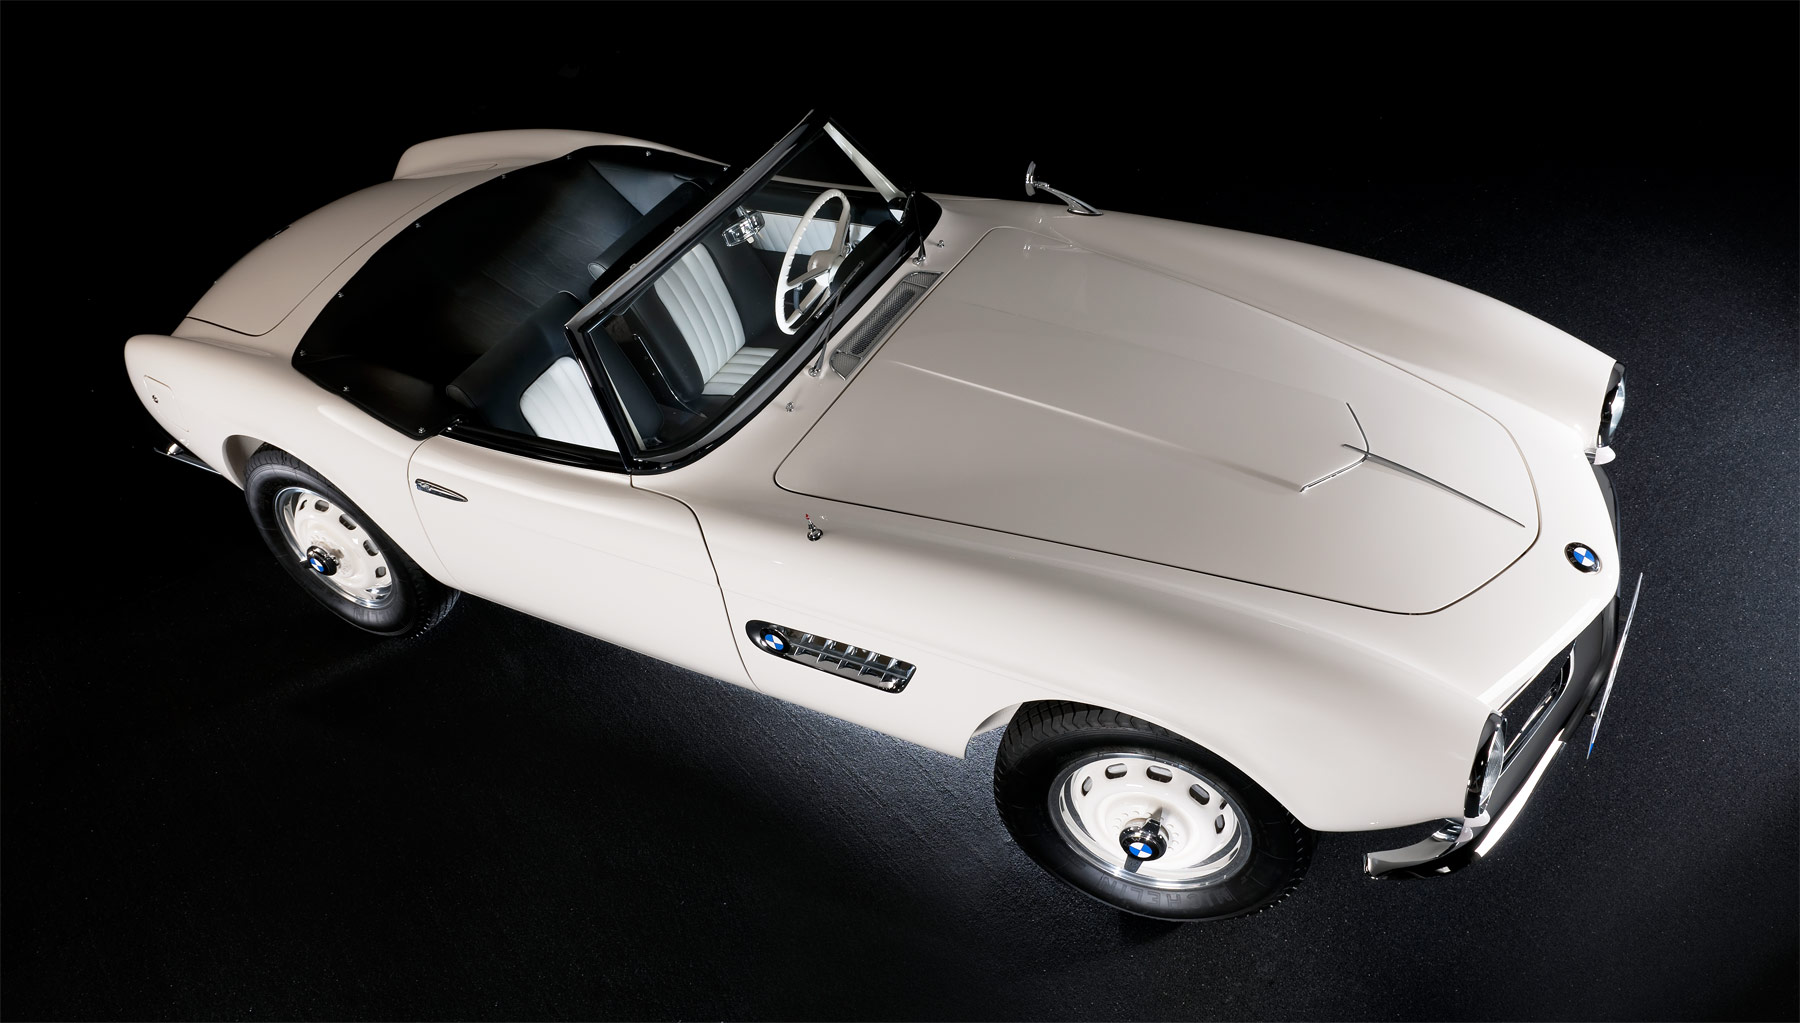 The BMW 507 Owned By Elvis Presley Returns To Its Former Glory